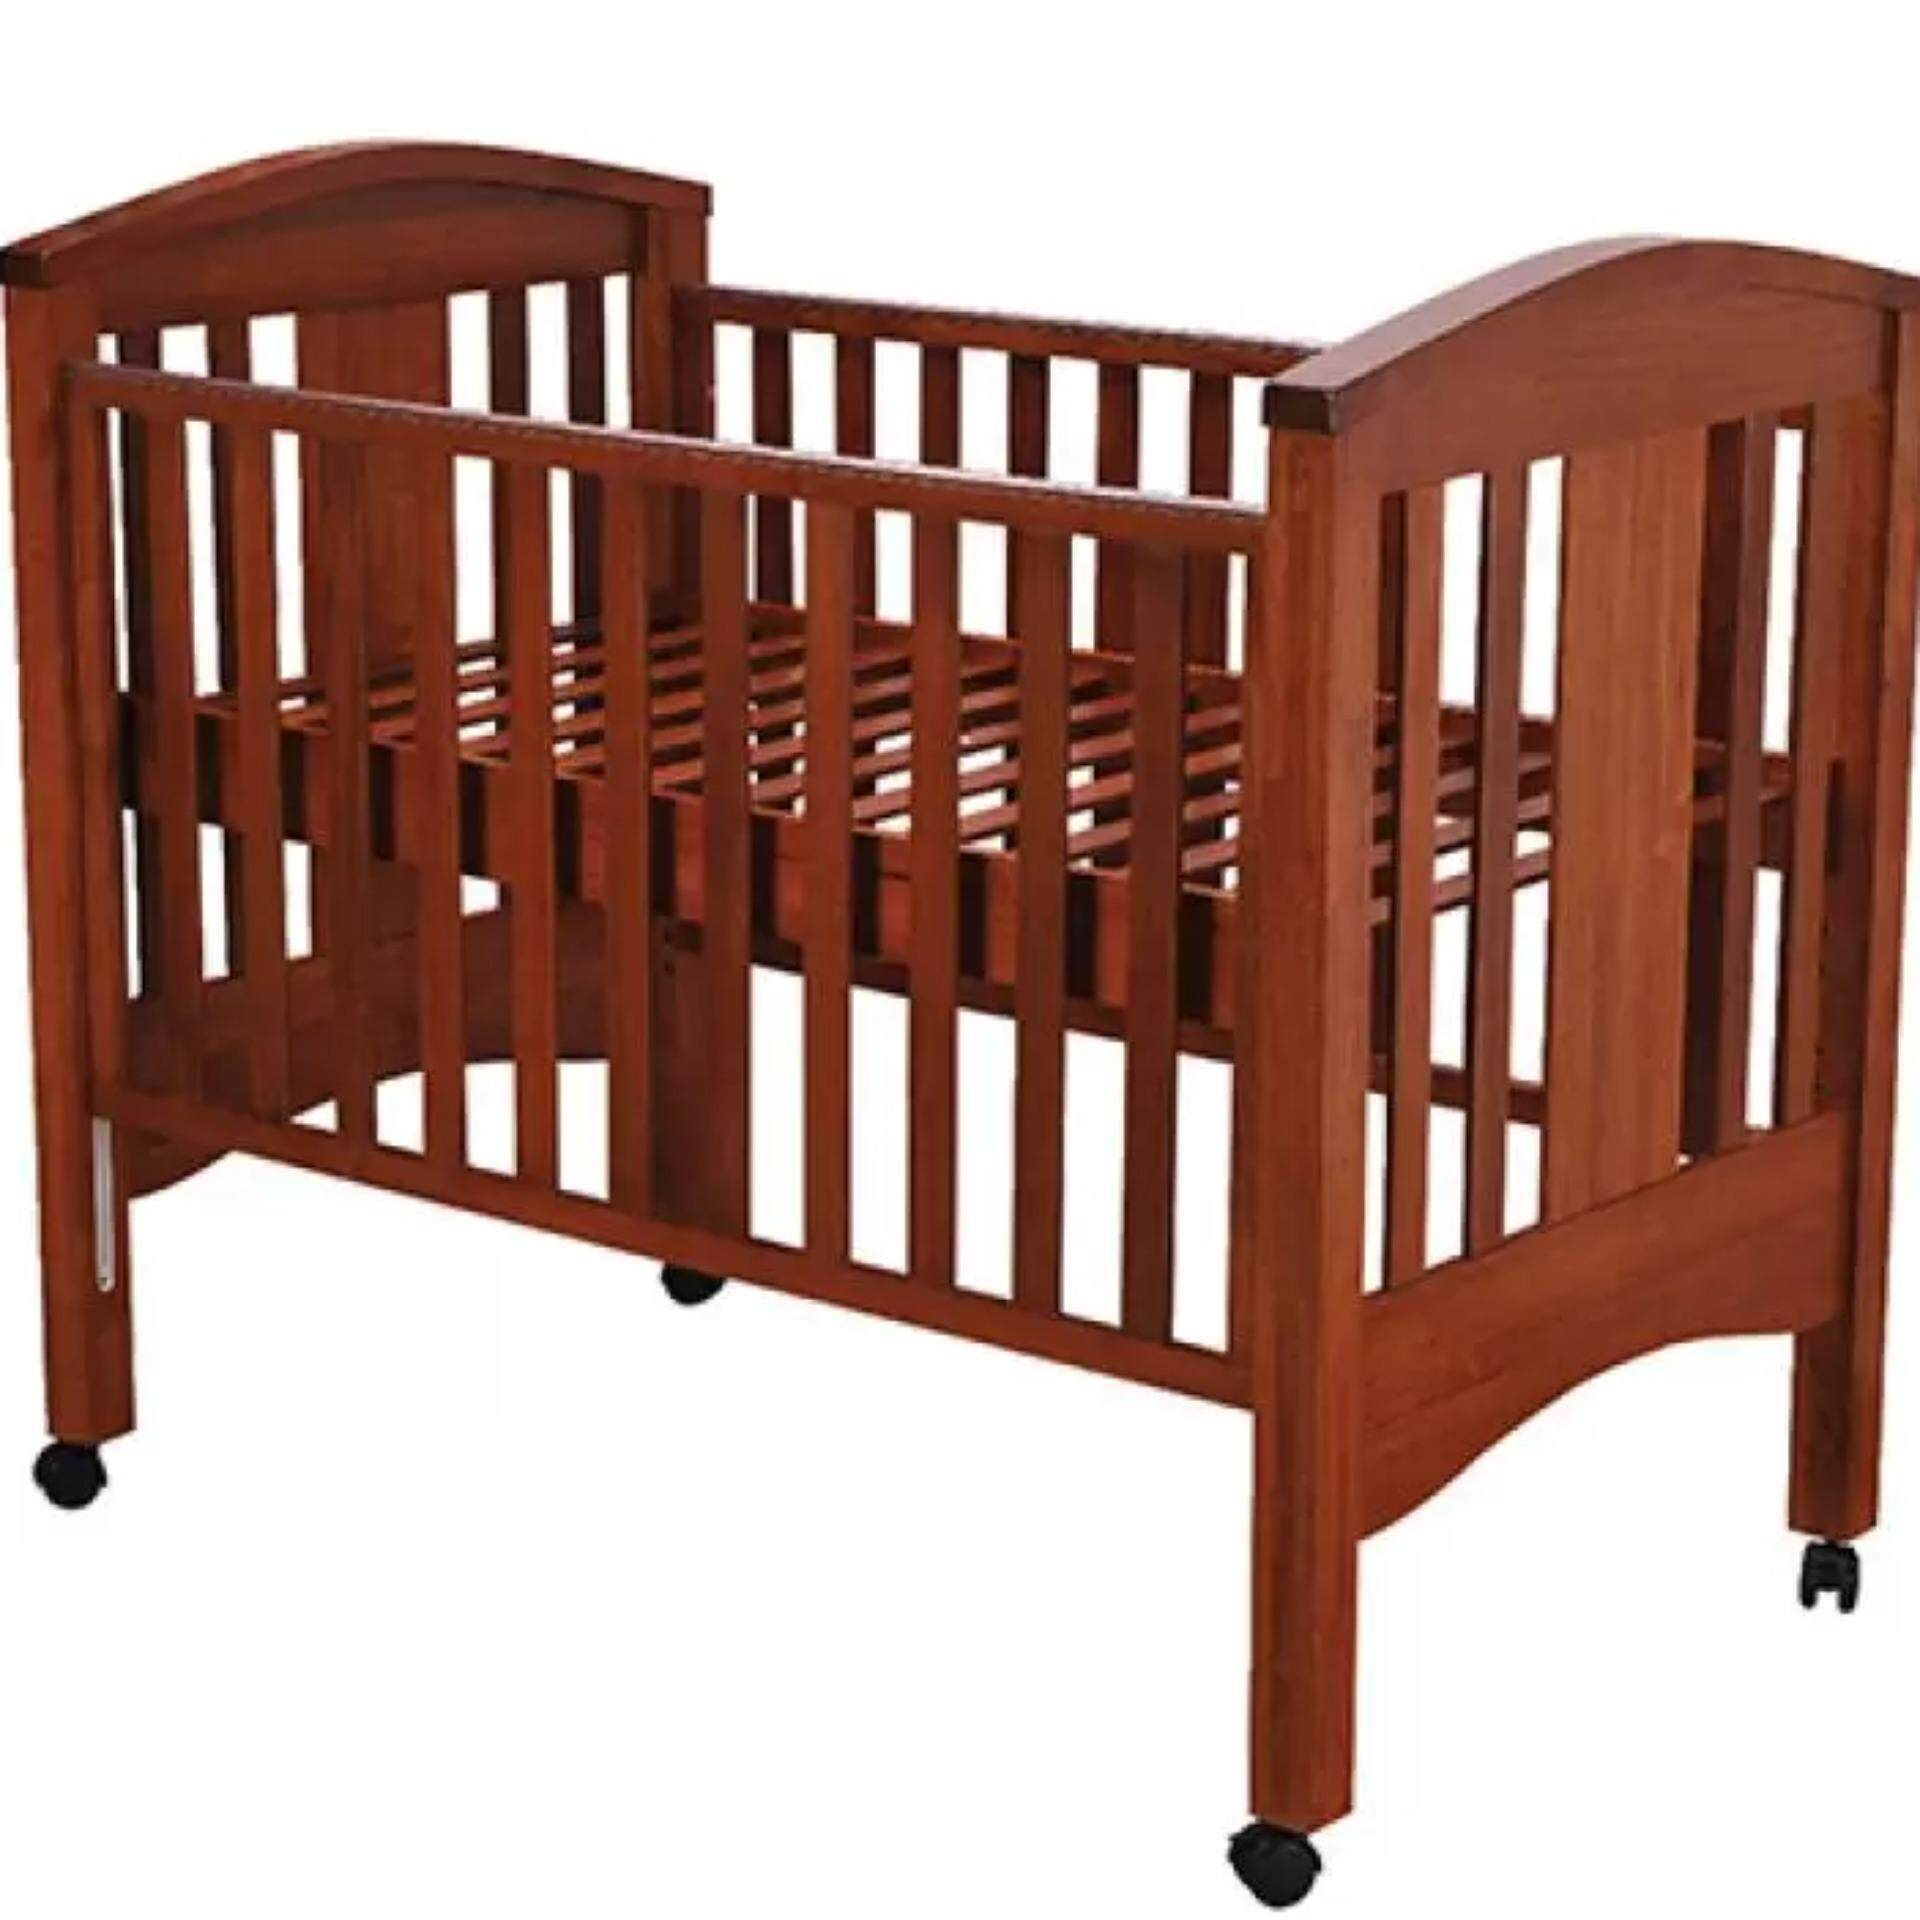 Baby crib for sale malaysia - Baby Love London 4 In 1 Baby Cot Bed 28 X 52